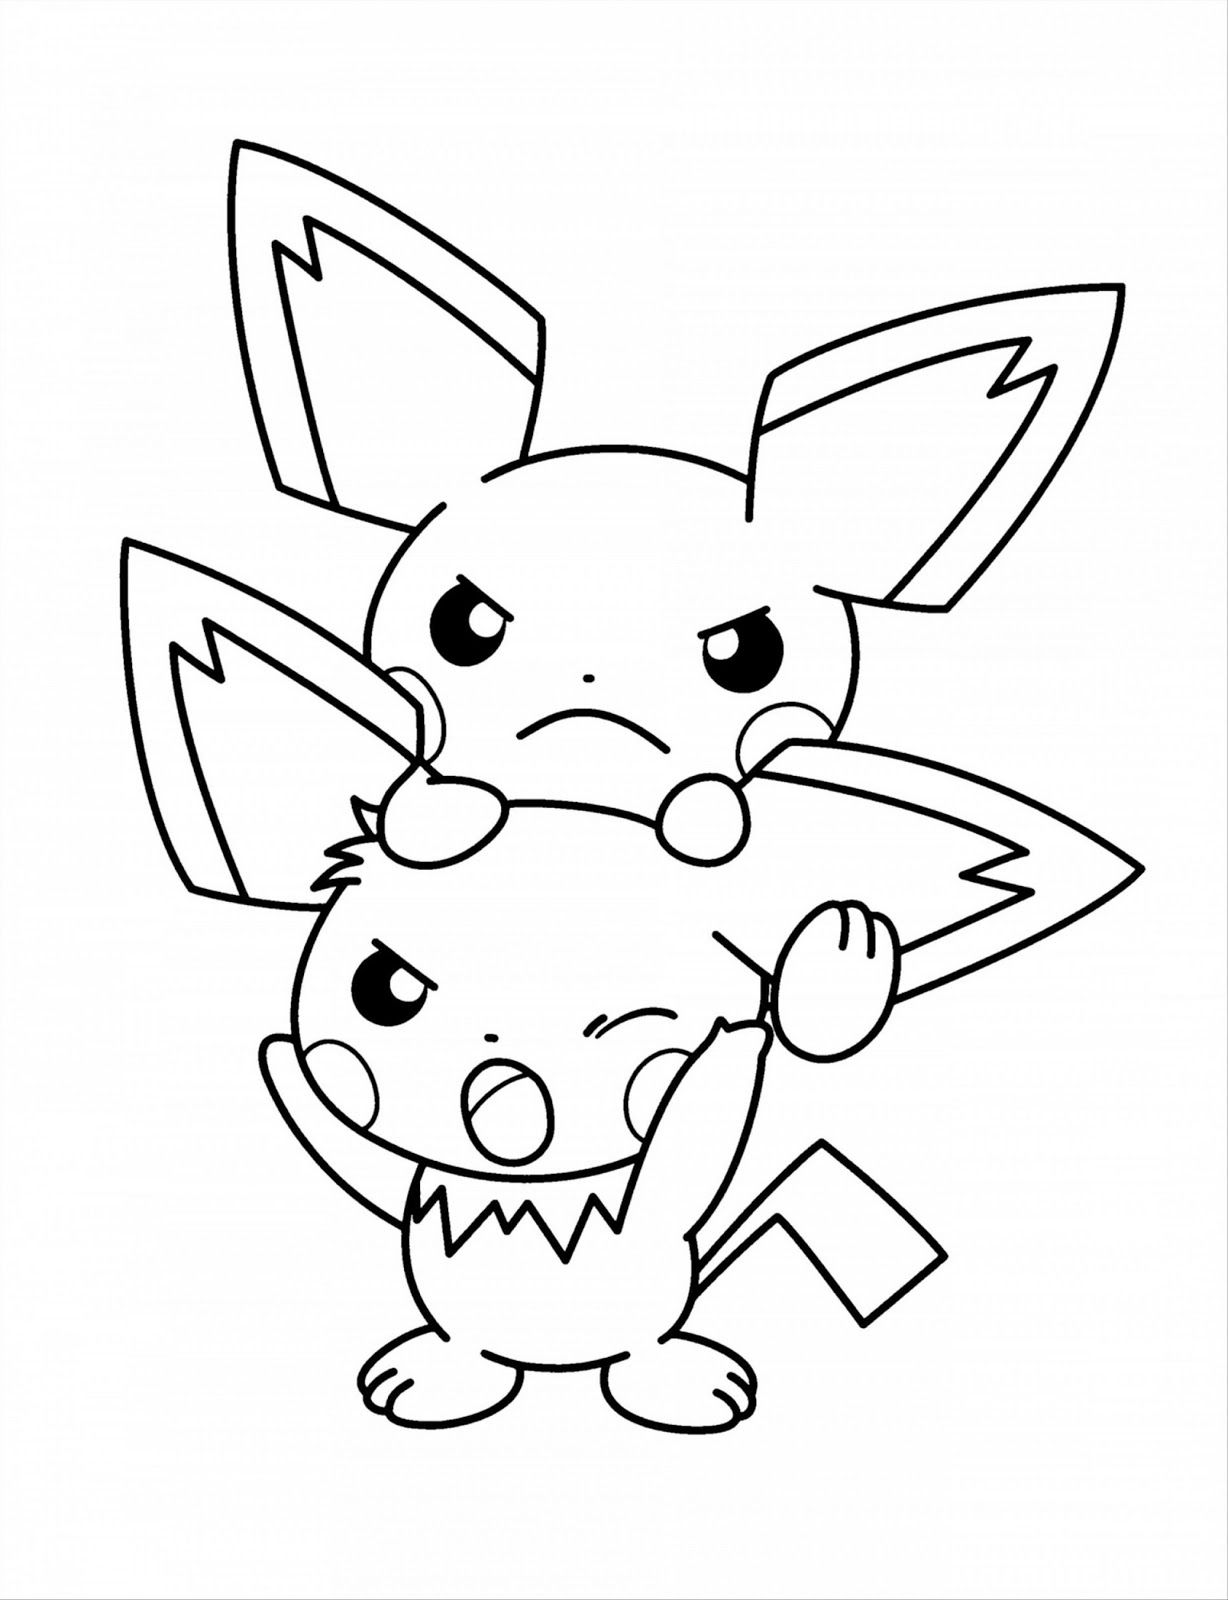 Super Cute Baby Pokemon Coloring Pages Pichu Pokemon Coloring Pages Pikachu Coloring Page Pokemon Coloring Sheets